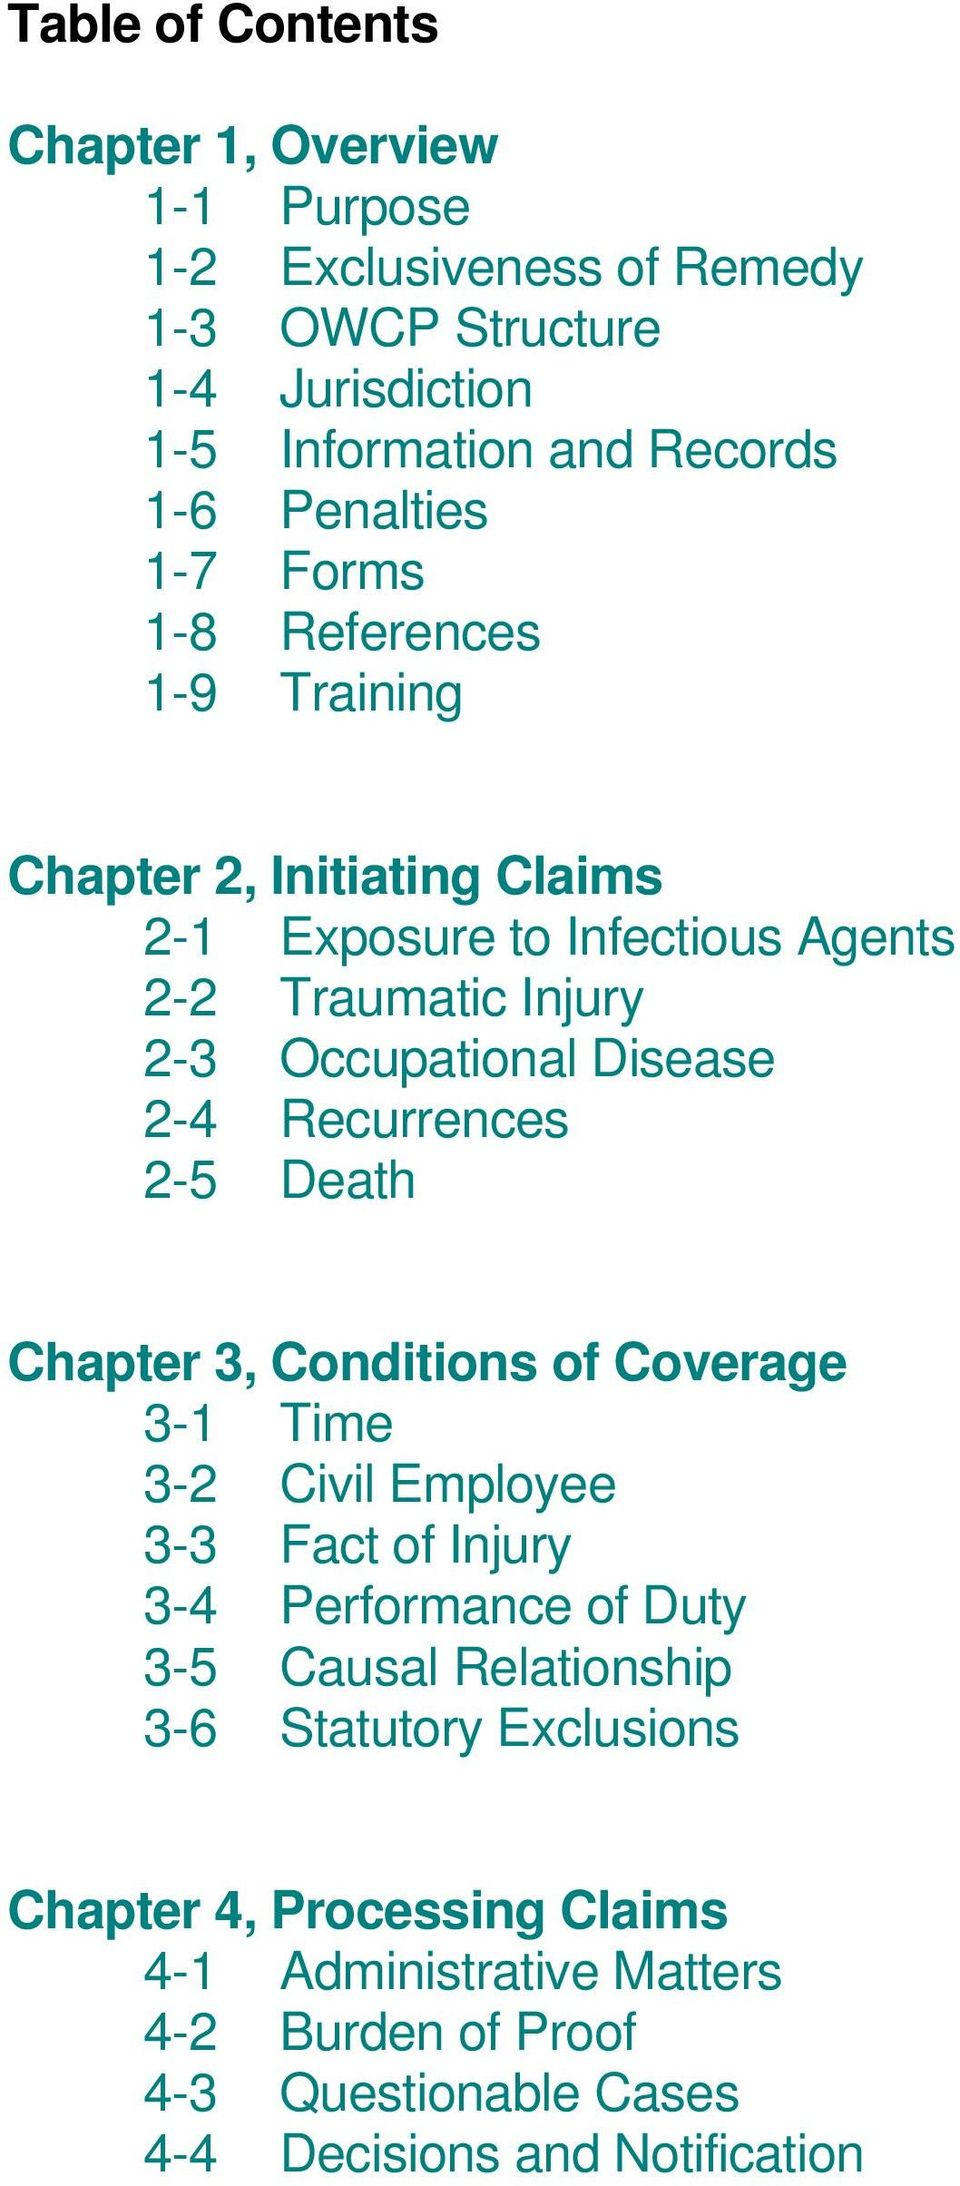 Disease 2-4 Recurrences 2-5 Death Chapter 3, Conditions of Coverage 3-1 Time 3-2 Civil Employee 3-3 Fact of Injury 3-4 Performance of Duty 3-5 Causal